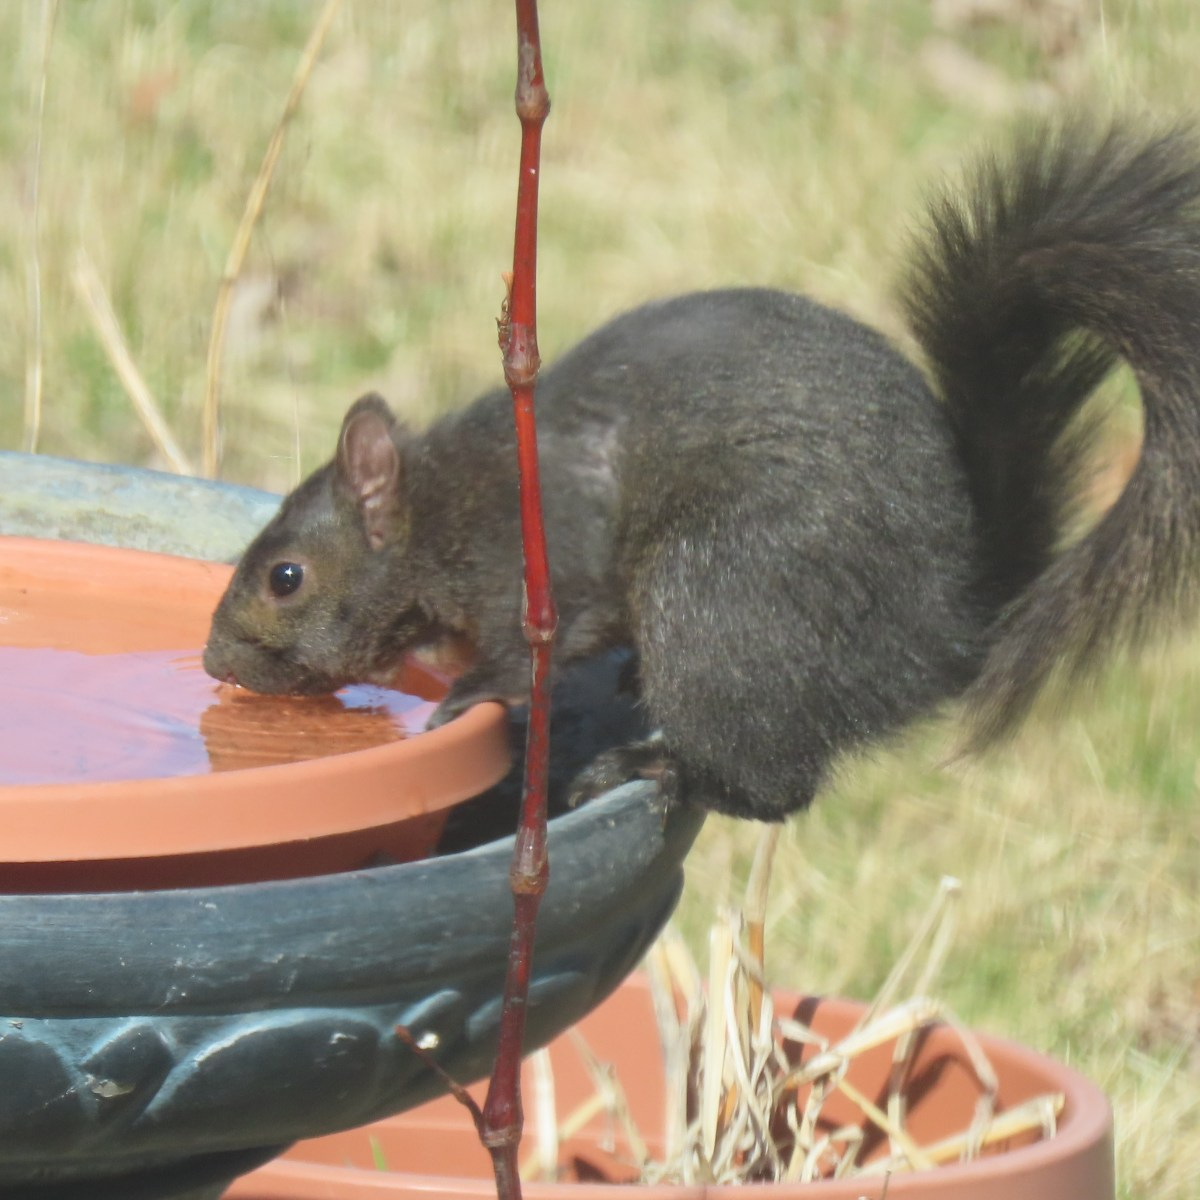 A gray squirrel at stands on the edge of a birdbath and sips from it